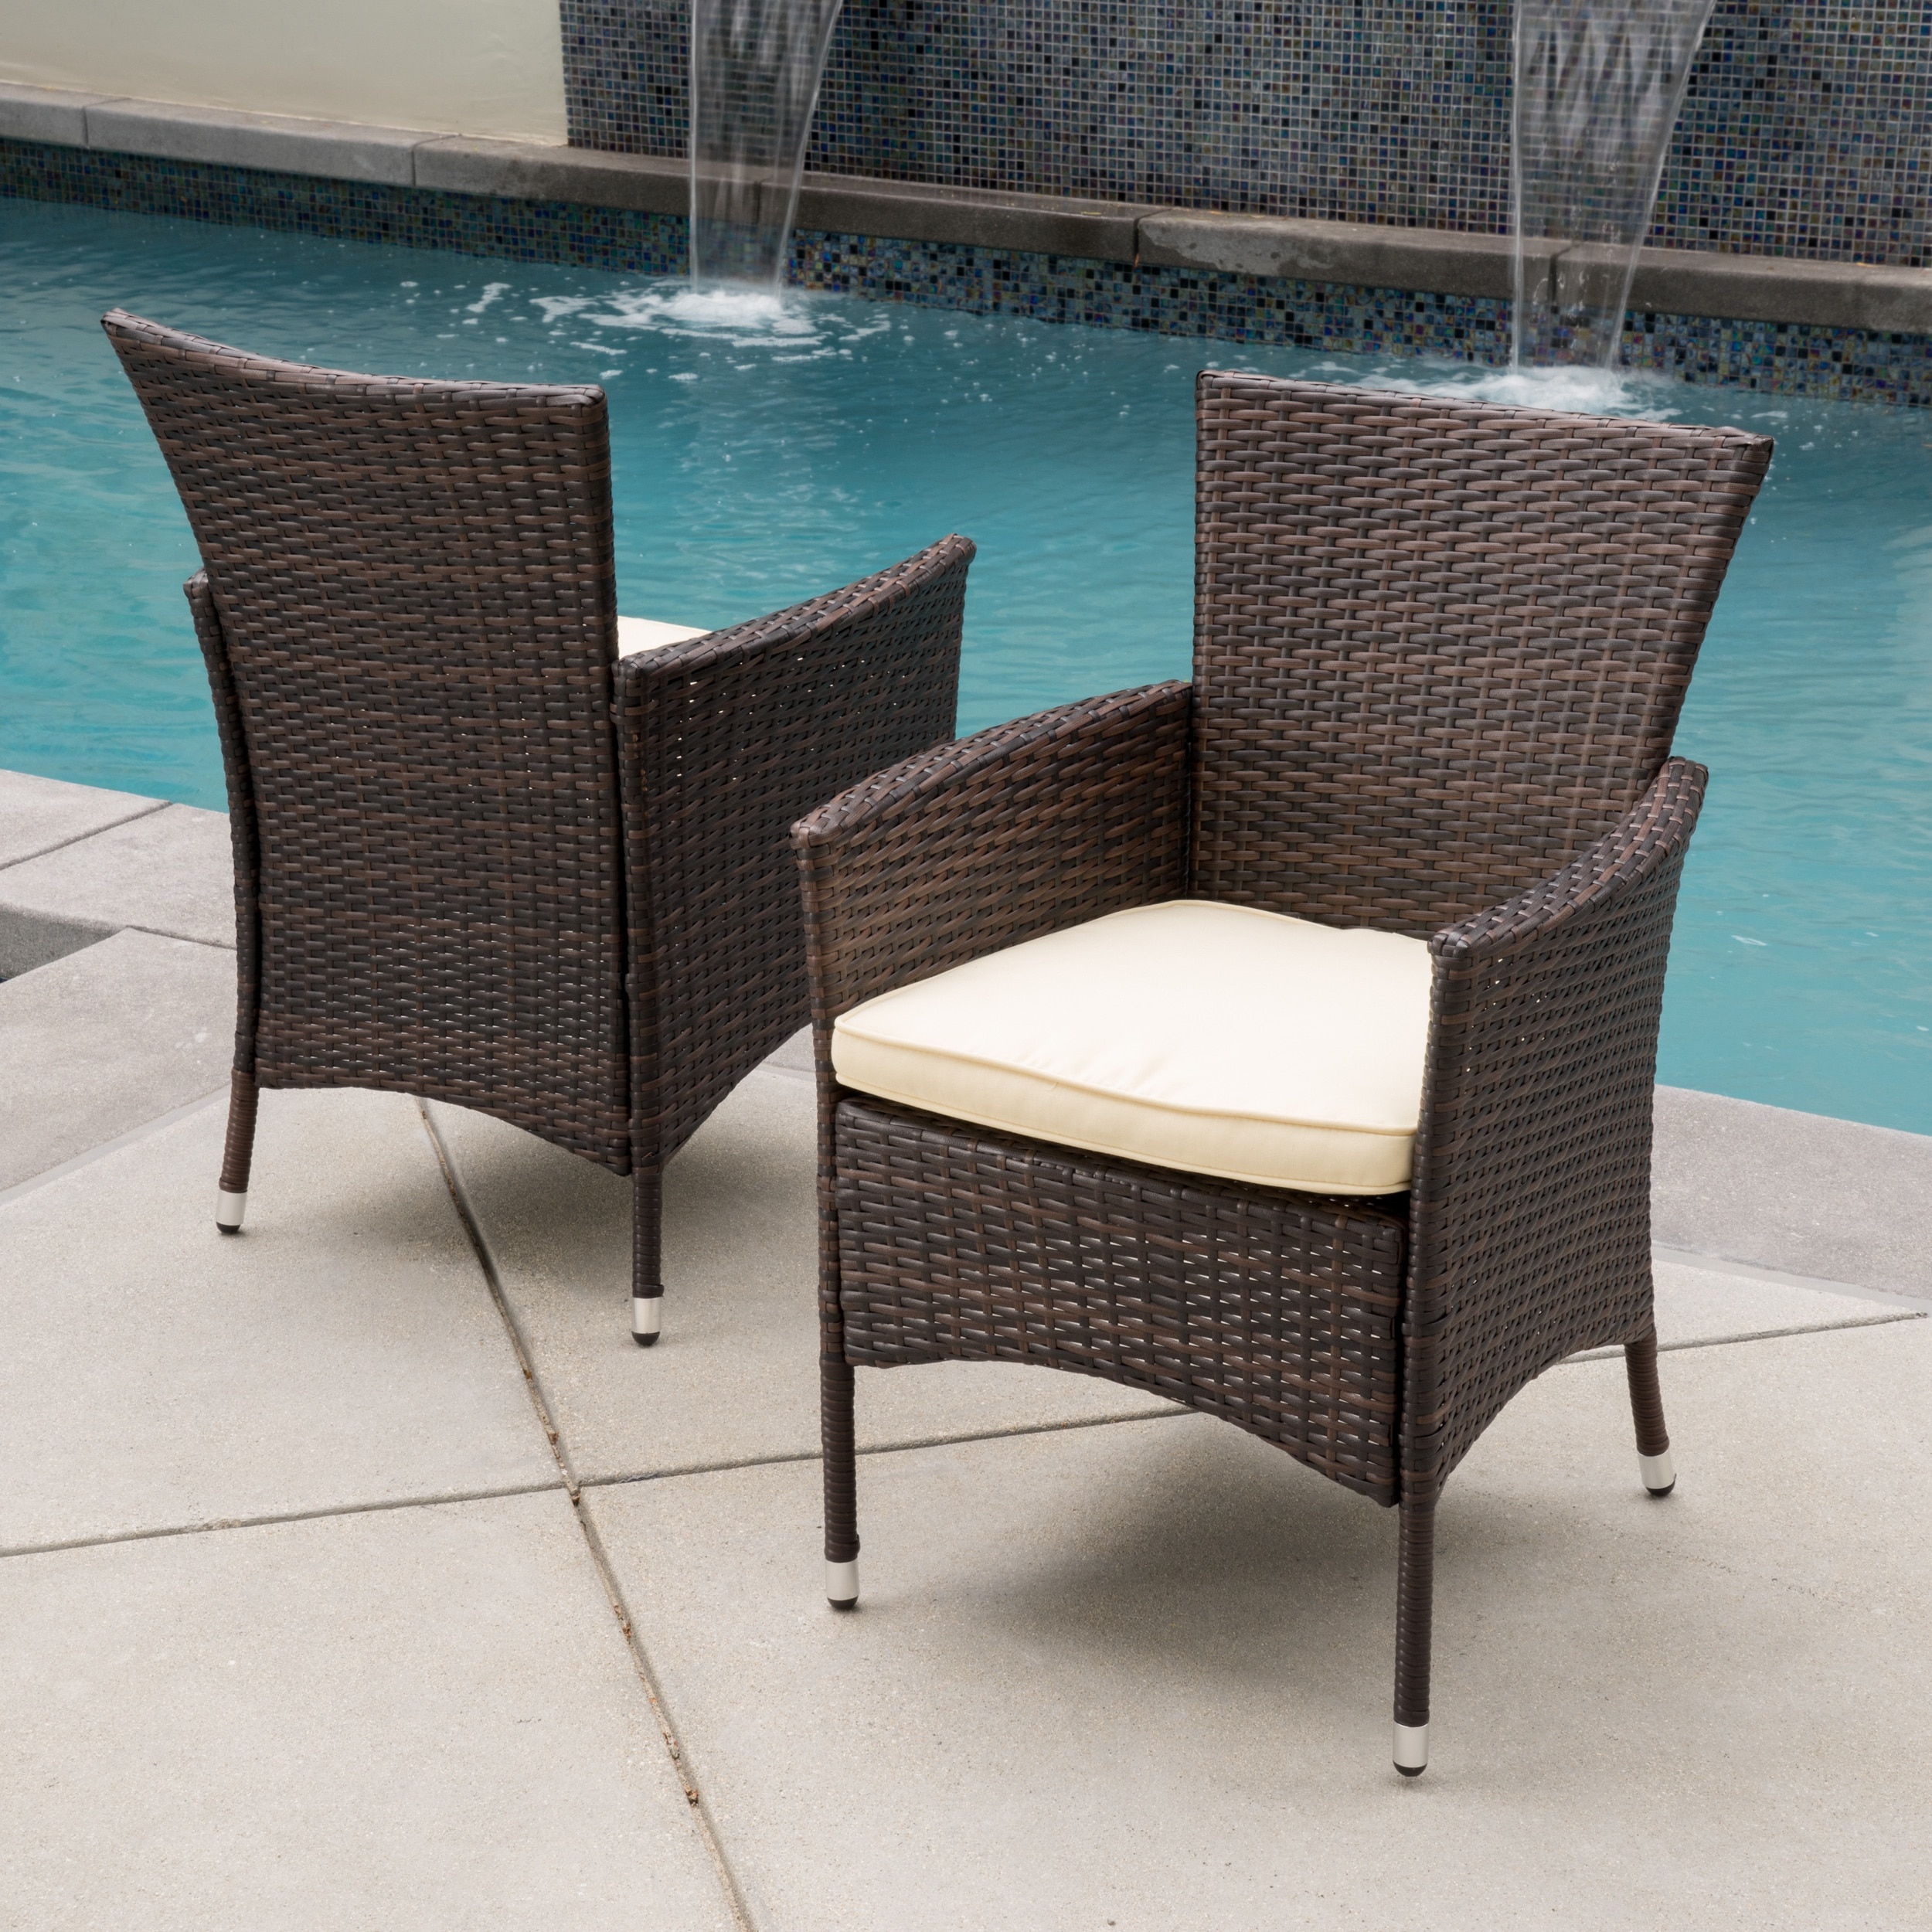 concept design of chairs chair patio with wicker furniture exterior photo outdoor